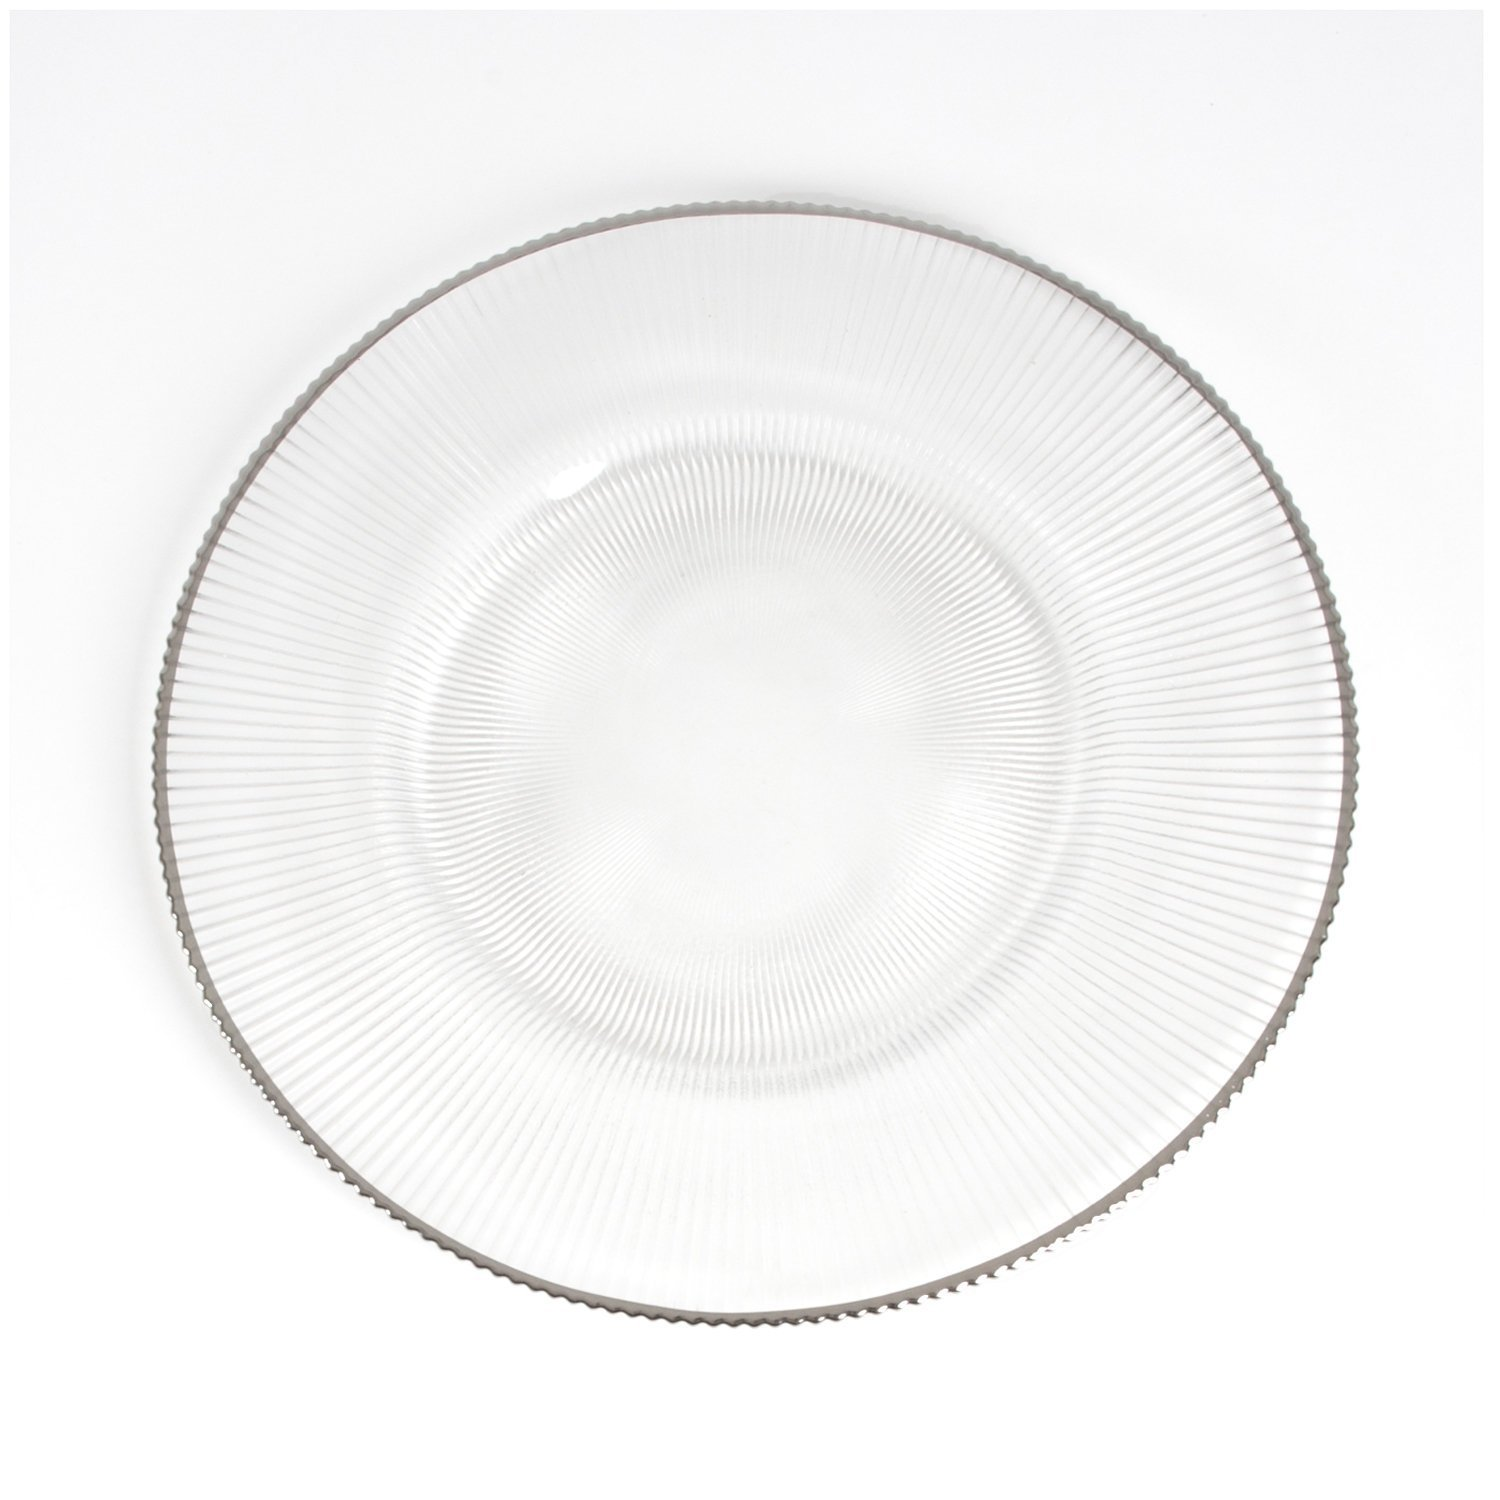 Fennco Styles Pleated Design 13'' Decorative Glass Charger Plate-Set of 6